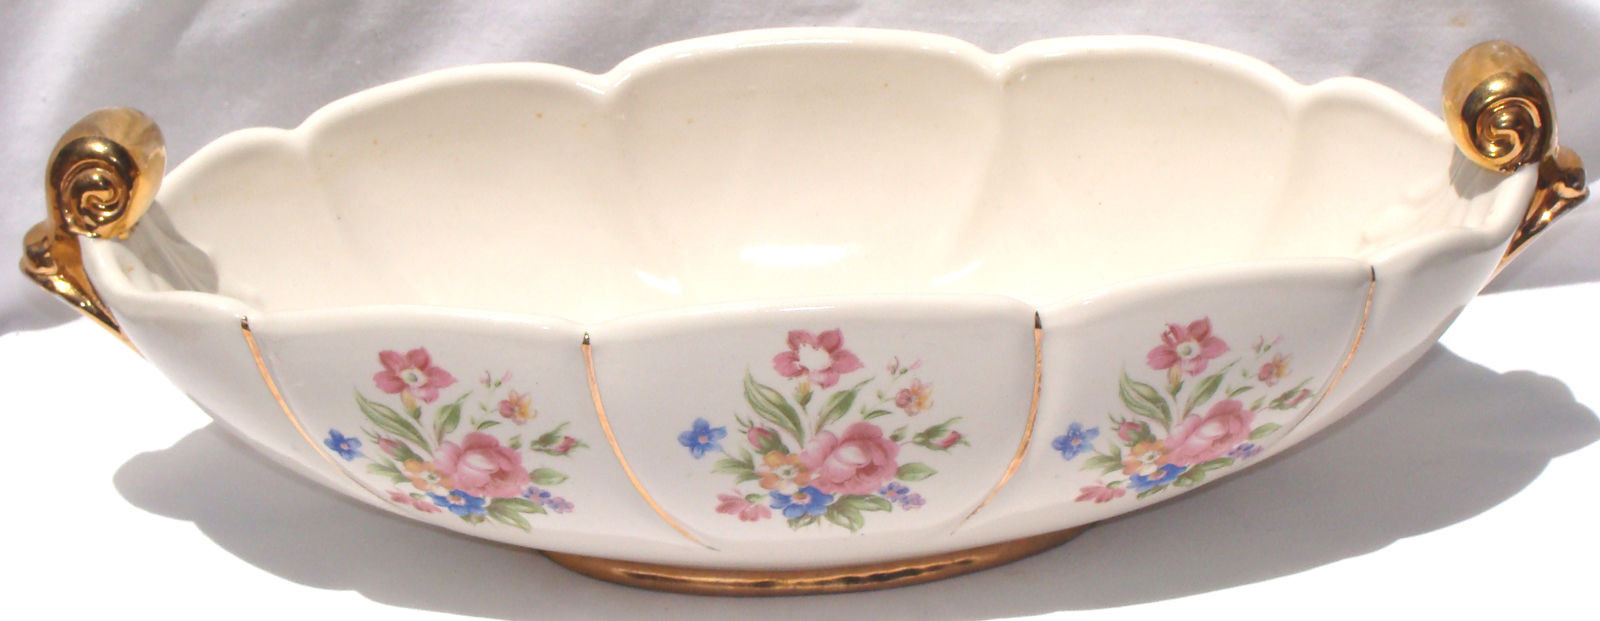 abingdon usa pottery vase of vint abingdon u s a pottery console bowl 532 cream w floral throughout abingdon u s a pottery console bowl 532 cream w floral decor gold 1940s 1 of 3only 1 avail